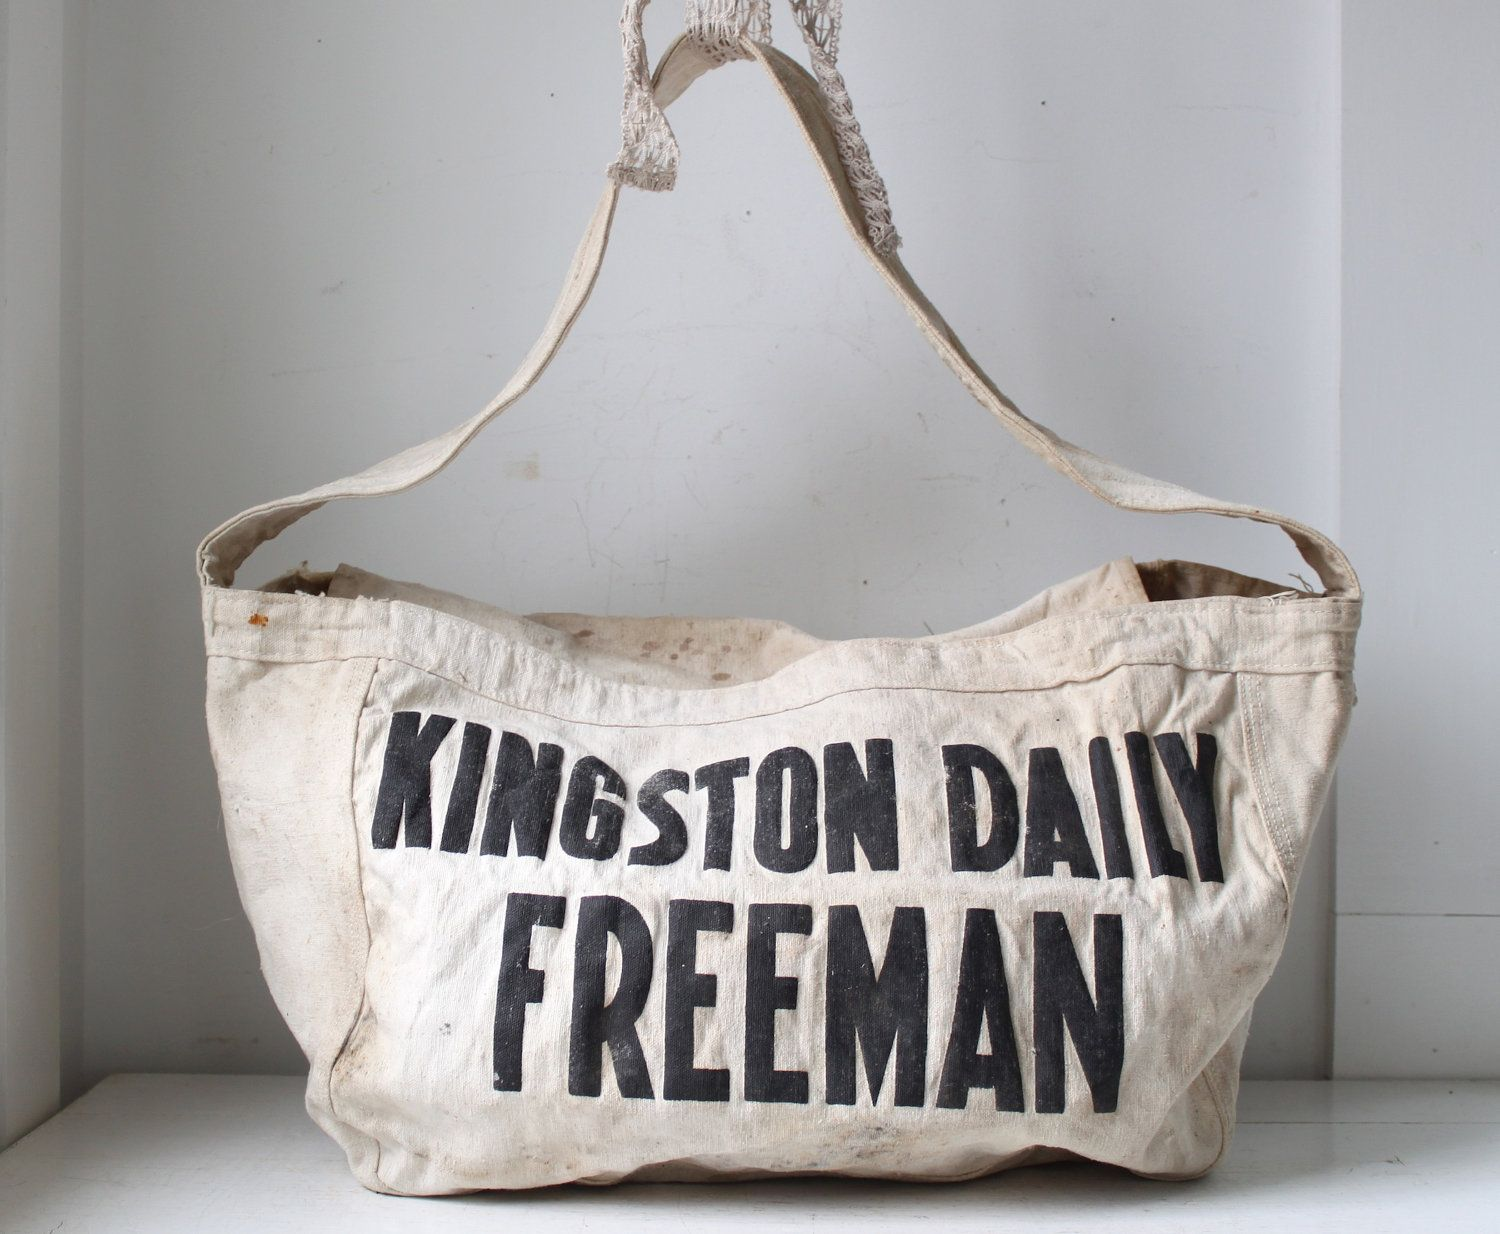 vintage 1950s newspaper bag. Kingston Daily Freeman delivery bag. Black on white canvas. Shoulder bag / hobo / messenger / book bag. $58.00, via Etsy.